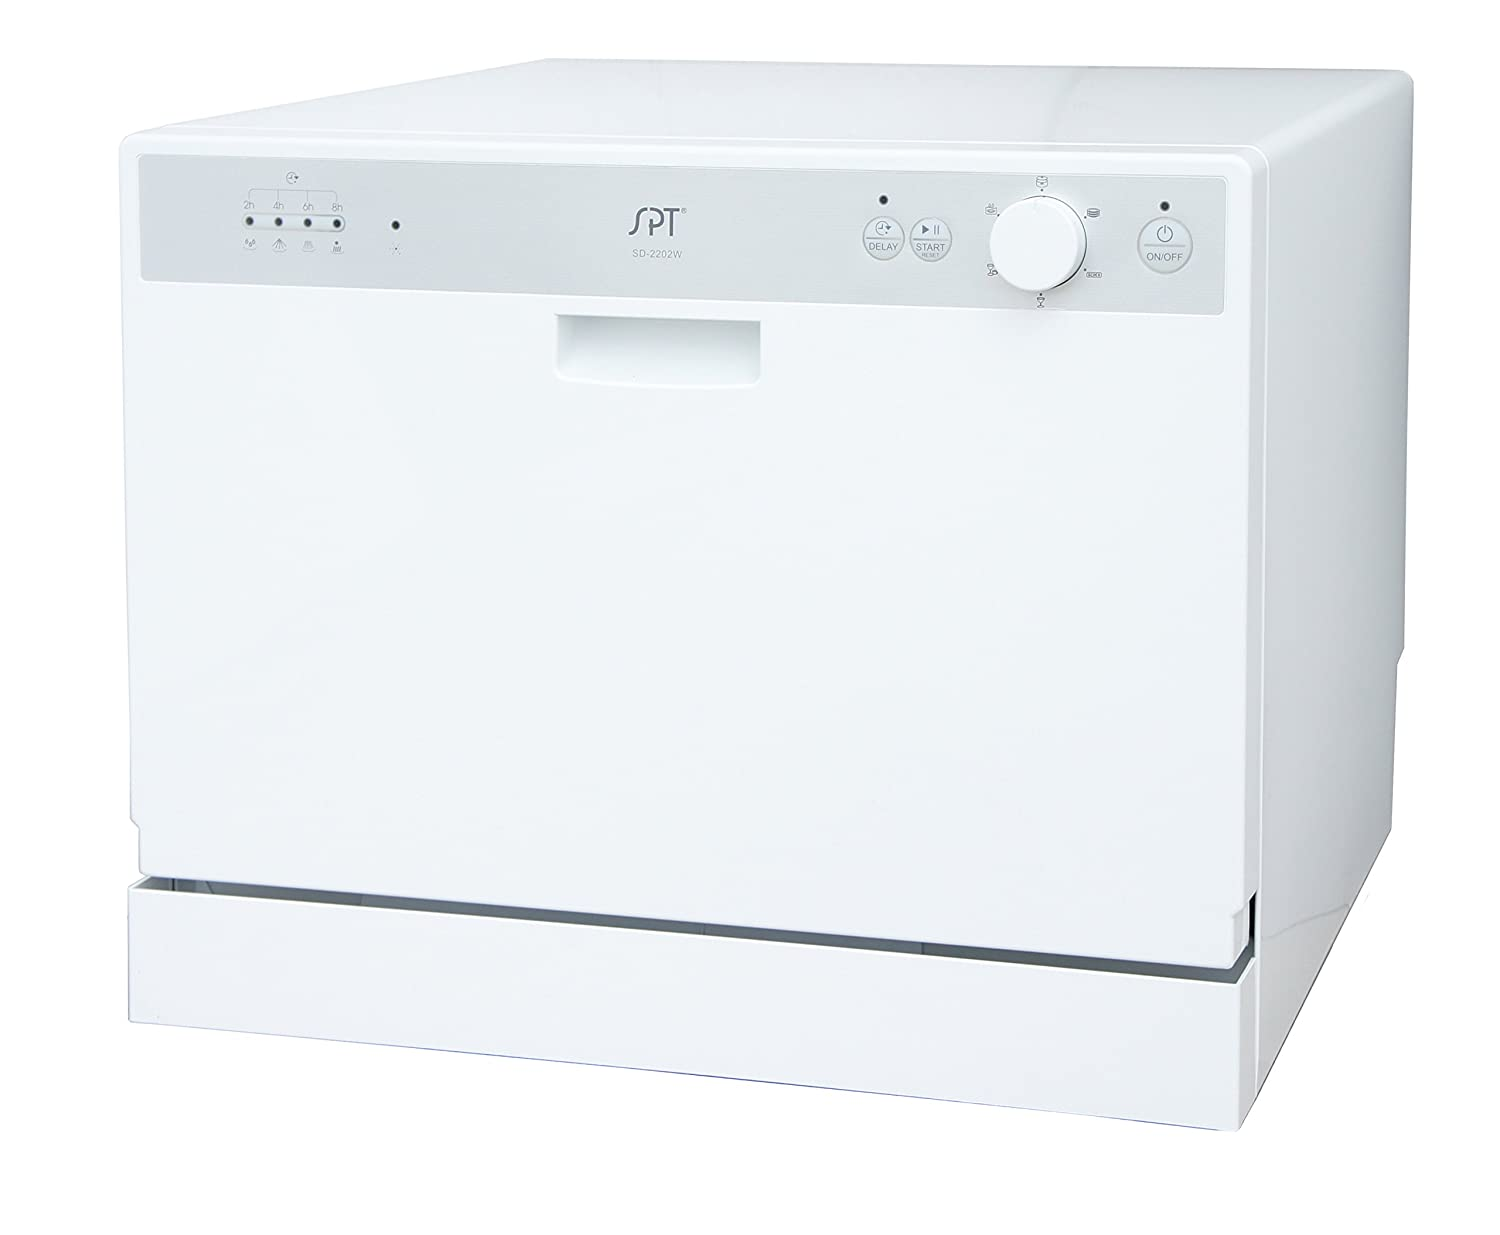 SPT SD-2202W Countertop Dishwasher with Delay Start, White Sunpentown